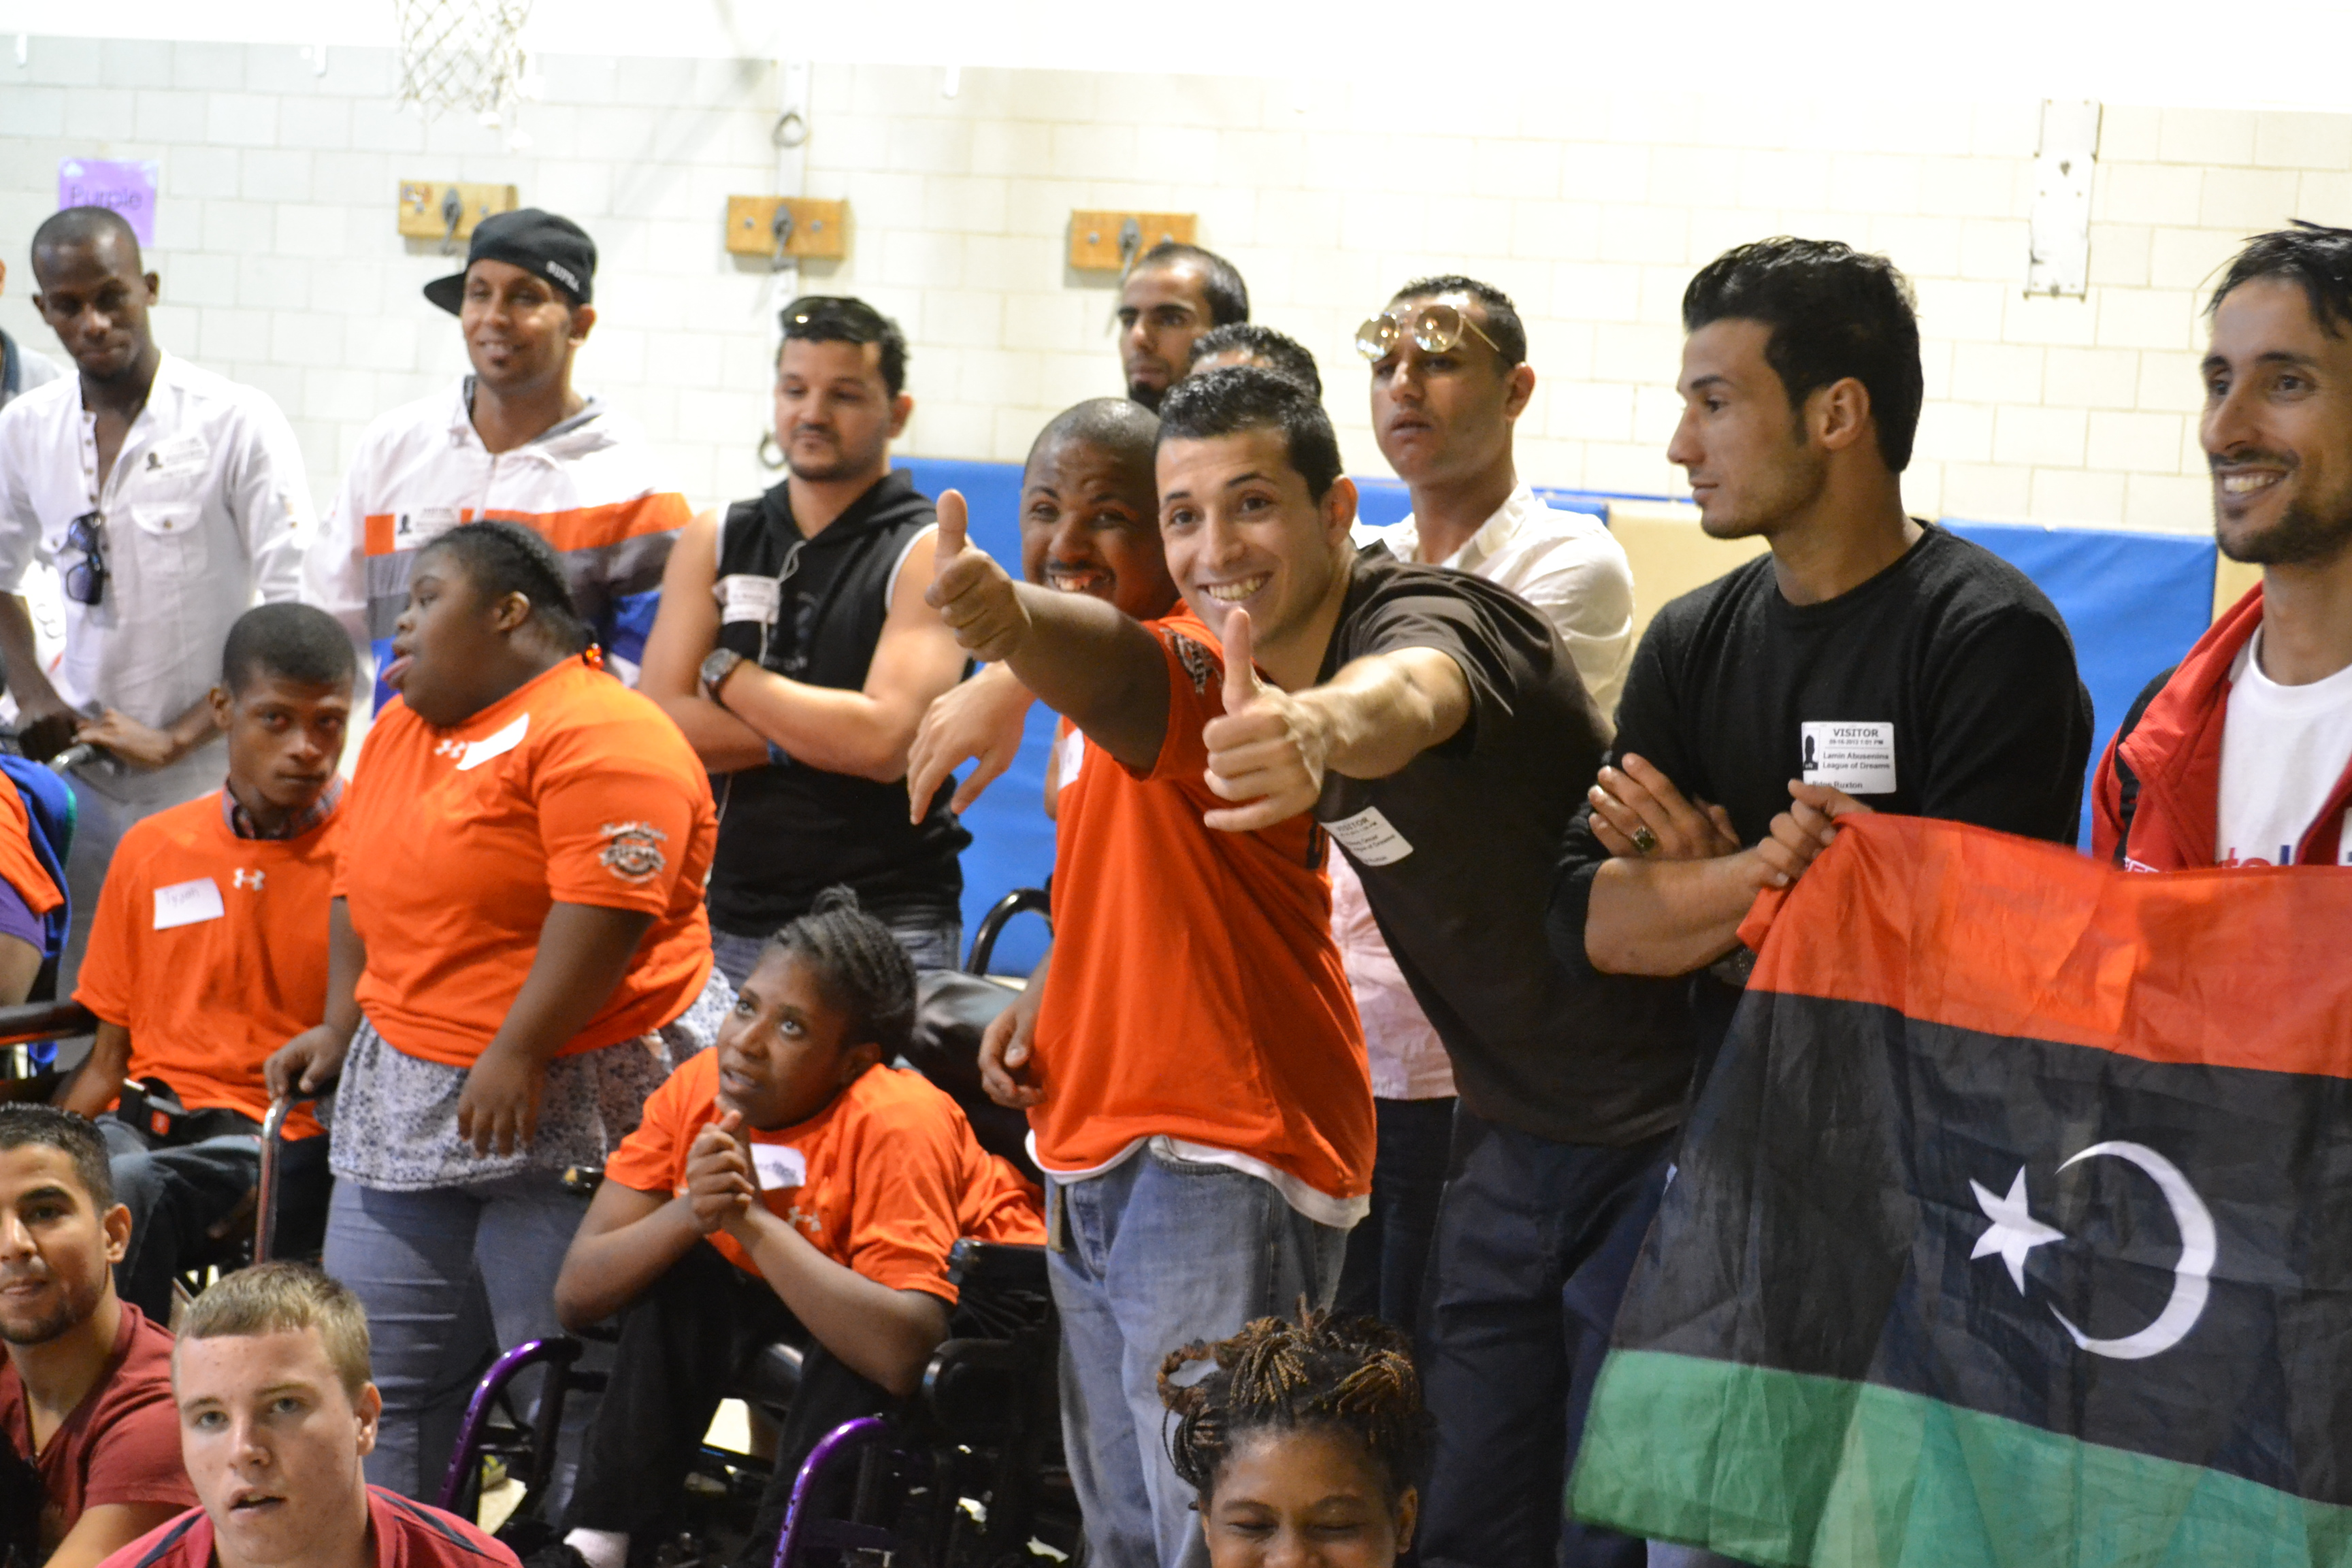 Libyan coaches learn about sport and disability in the United States at the Ridge Ruxton School